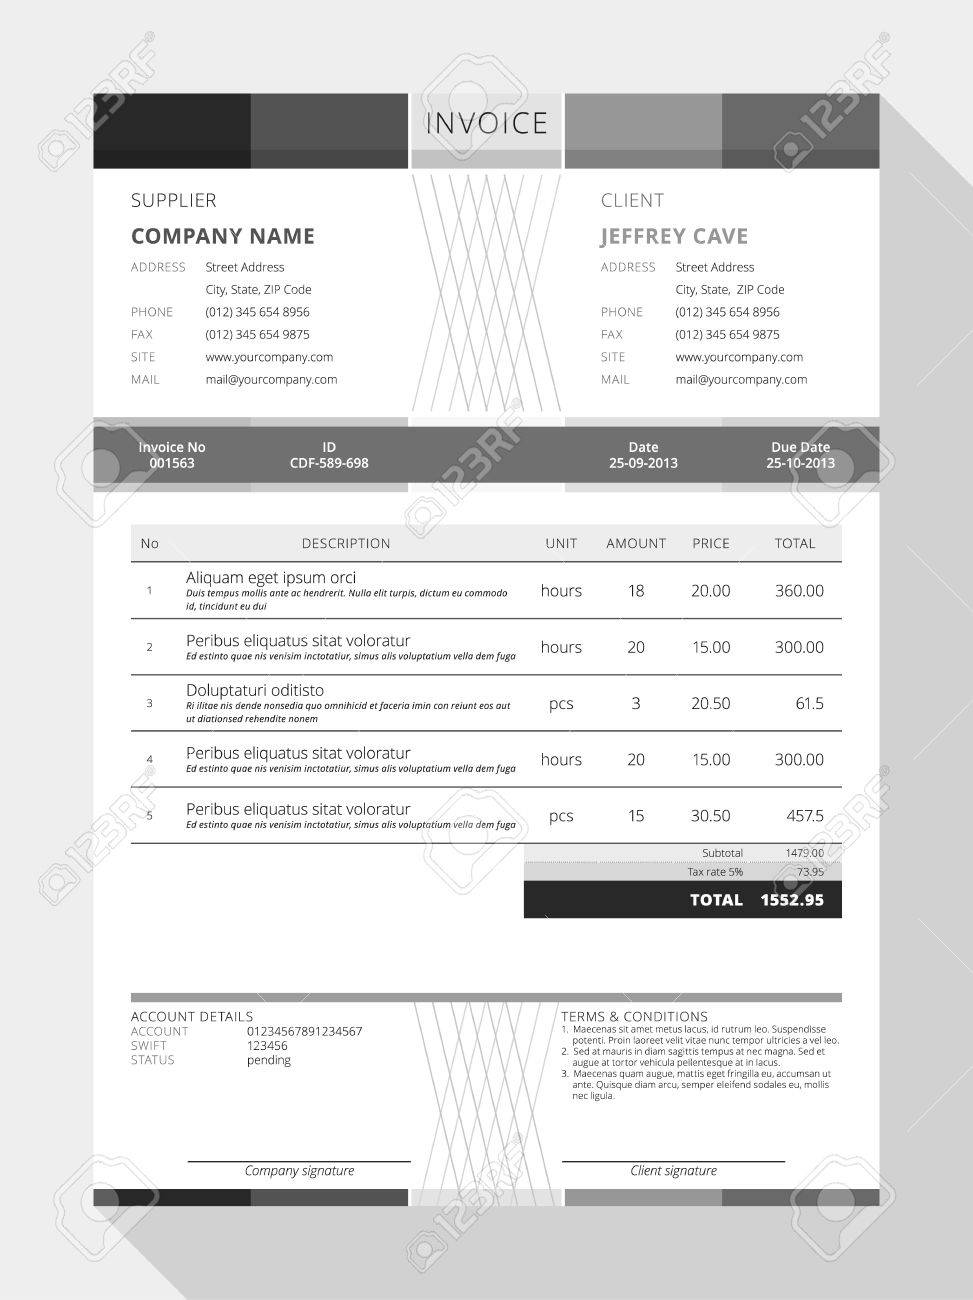 Maidofhonortoastus  Splendid Design An Invoice  Professional Graphic Design Invoice  With Exciting Vector Customizable Invoice Form Template Design Vector   Design An Invoice With Cool Receipts For Sale Also Receiption Desk In Addition Receipt And Document Scanner And Deposit Receipt Form As Well As Insured Mail Receipt Additionally Digital Receipt Organizer From Happytomco With Maidofhonortoastus  Exciting Design An Invoice  Professional Graphic Design Invoice  With Cool Vector Customizable Invoice Form Template Design Vector   Design An Invoice And Splendid Receipts For Sale Also Receiption Desk In Addition Receipt And Document Scanner From Happytomco